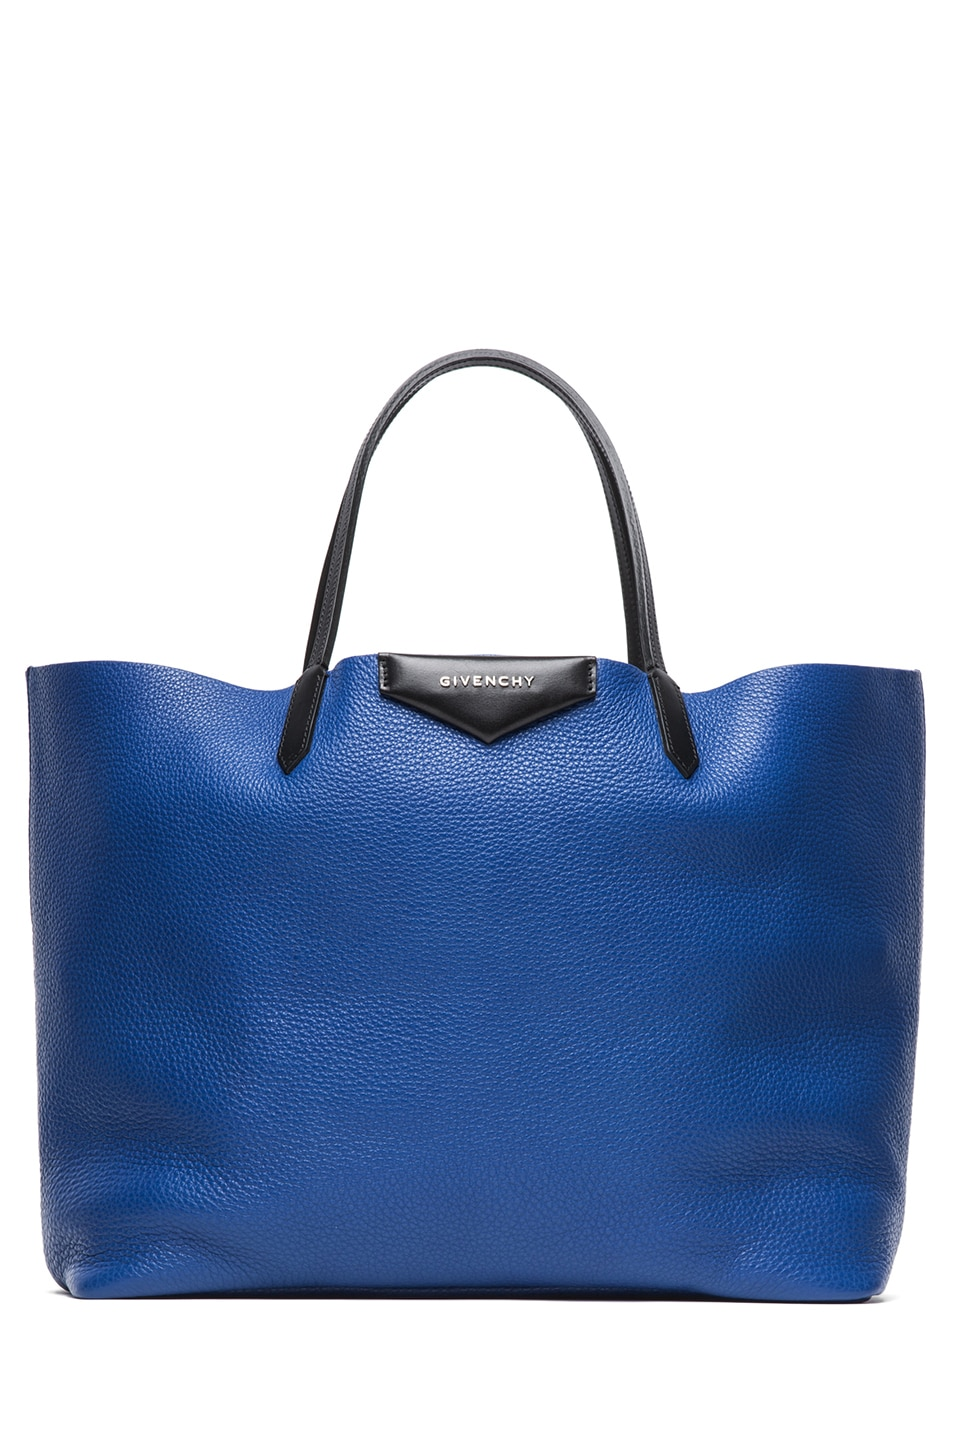 Image 1 of GIVENCHY Antigona Shopper in Blue